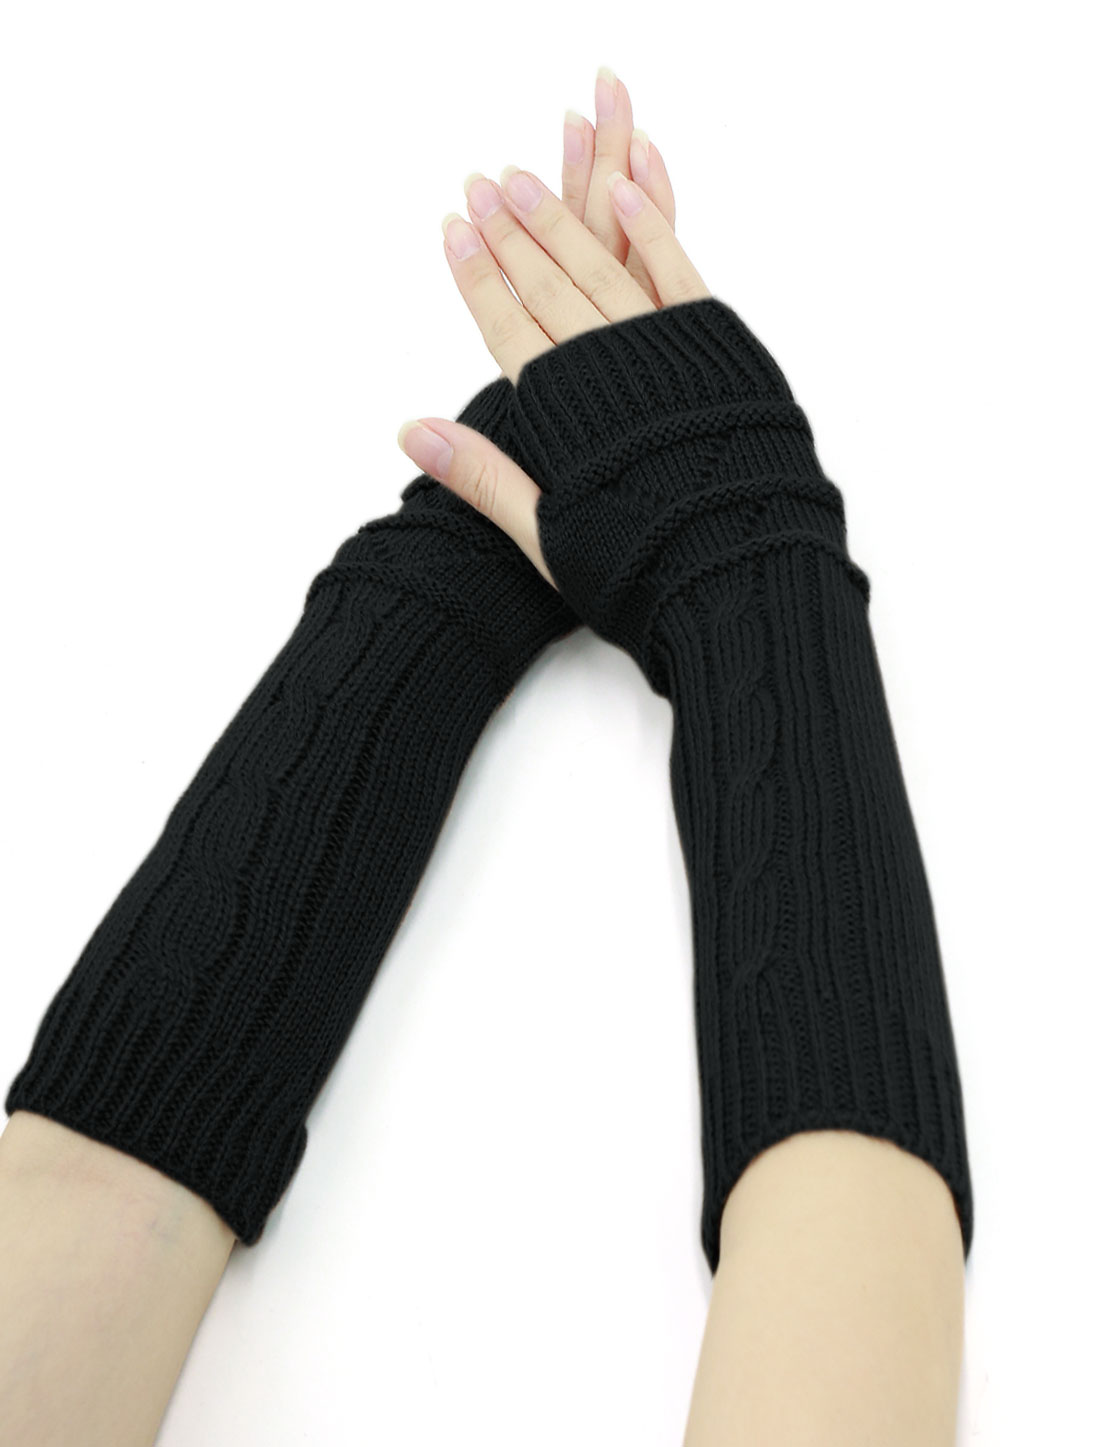 Women Thumbhole Textured Knitted Arm Warmers Pair Black